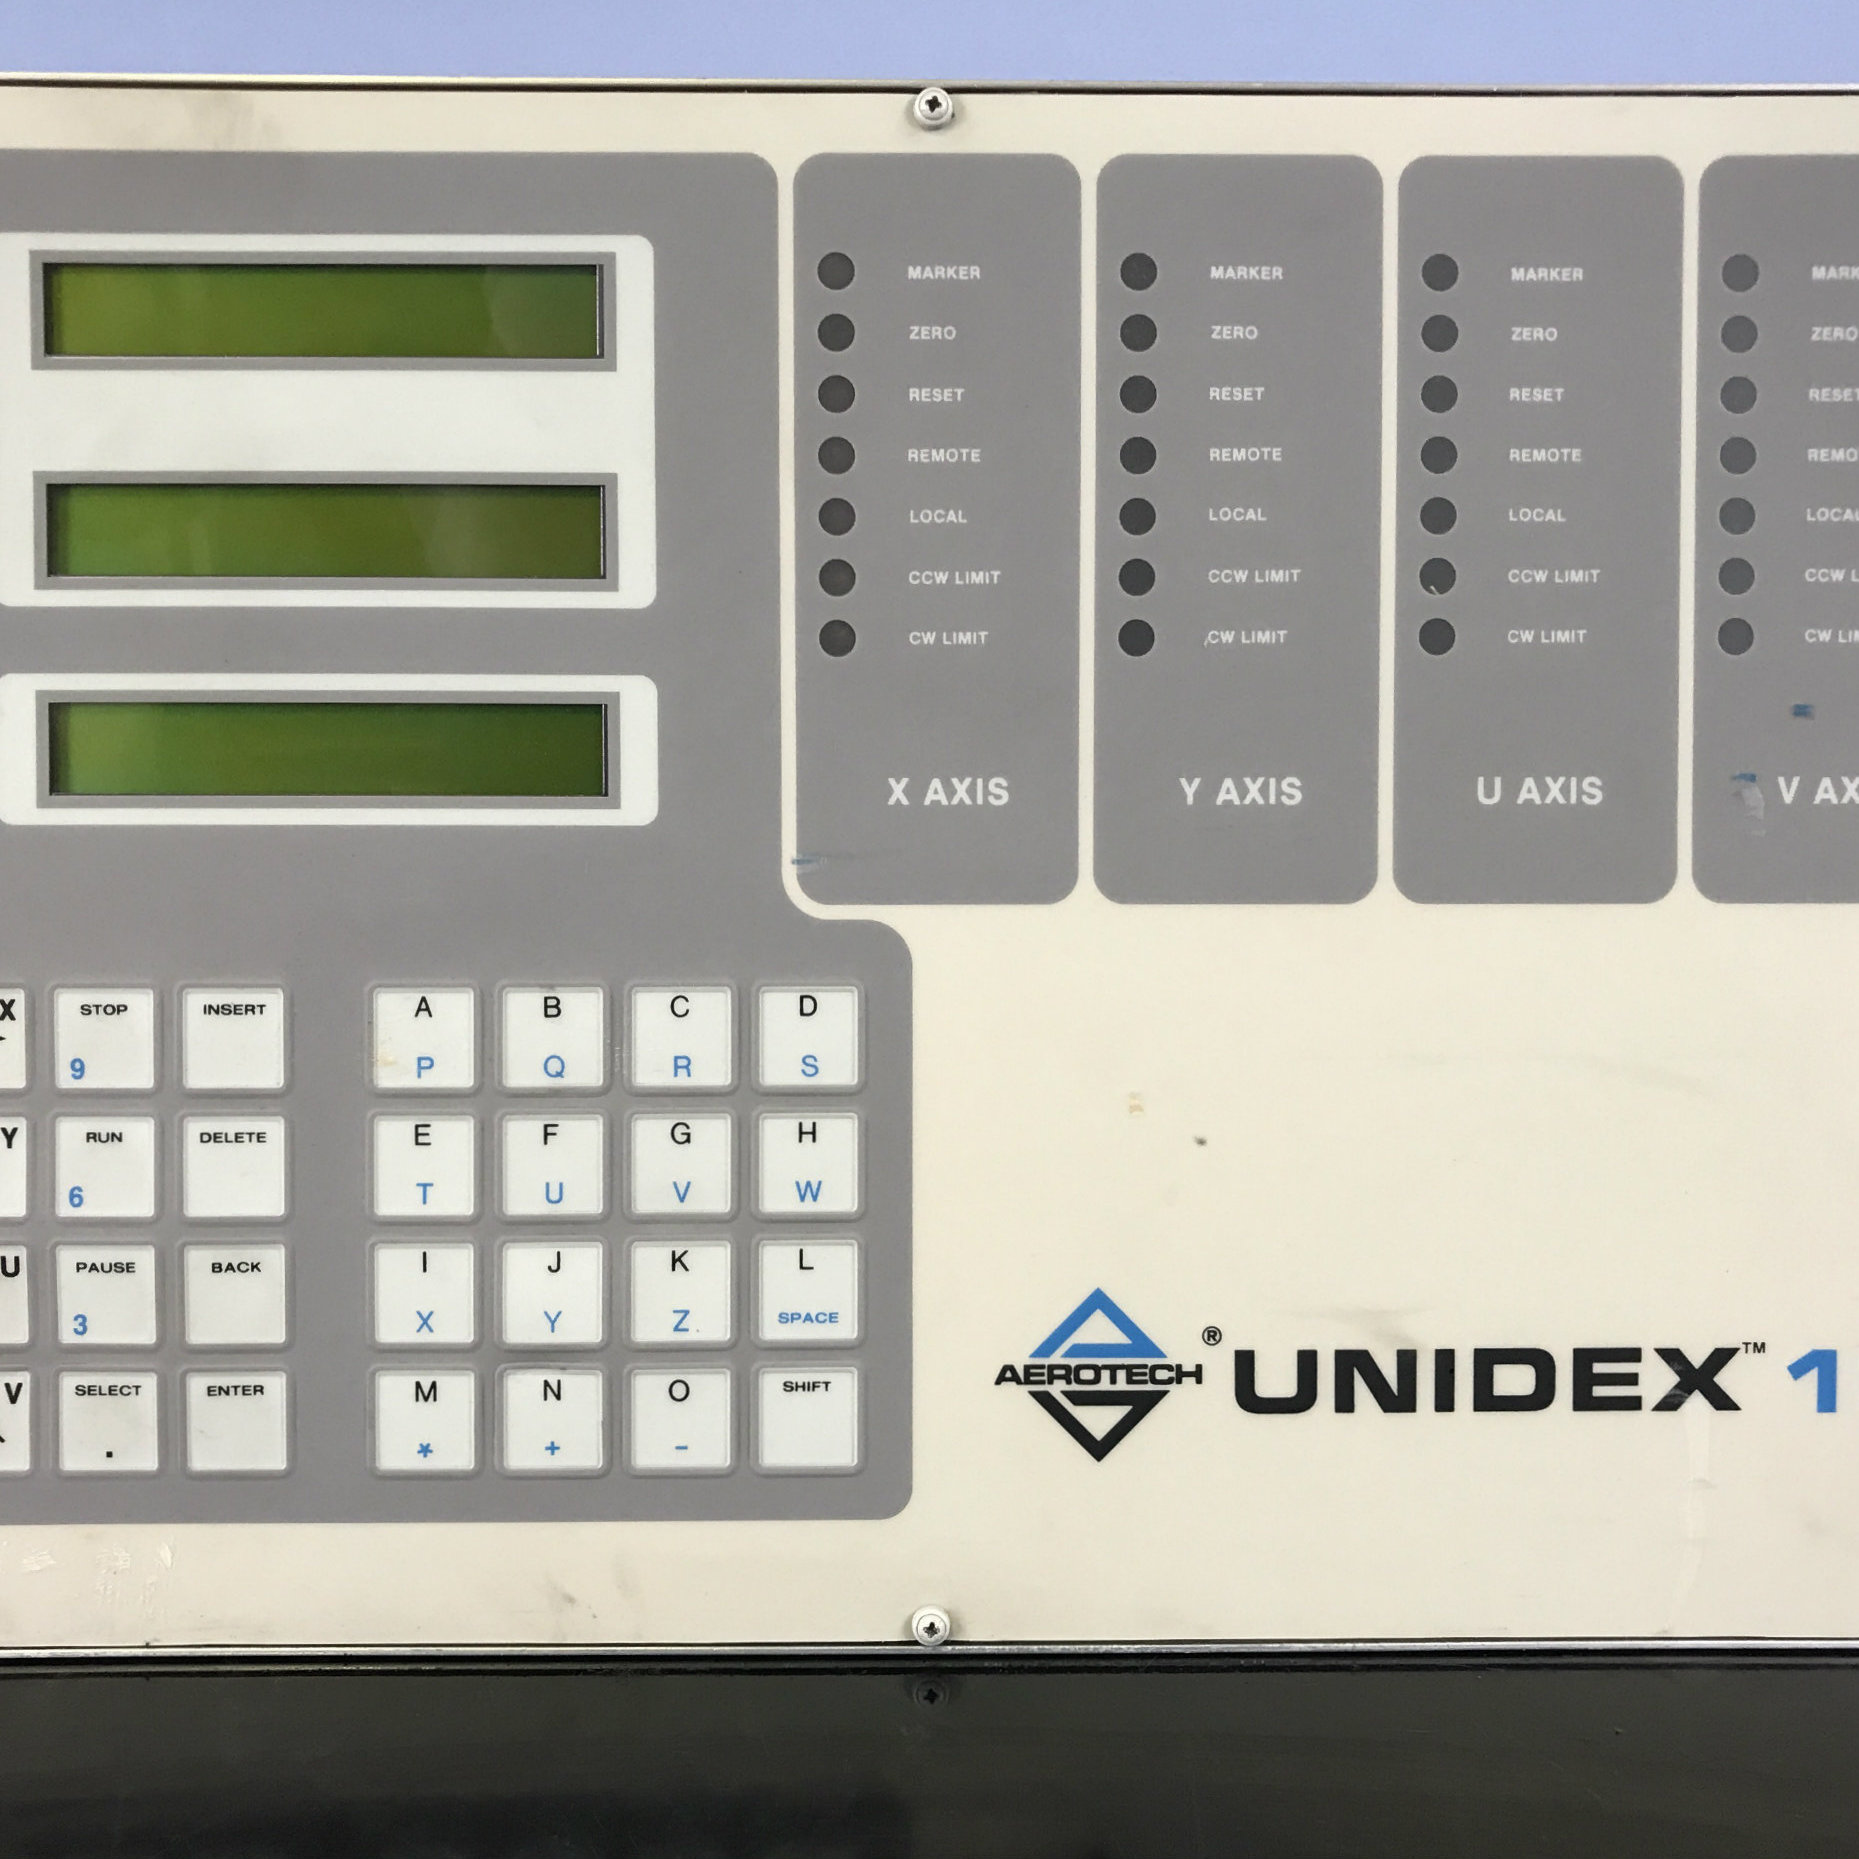 Aerotech U12R Unidex 12 2-Axis Motion Controller Image